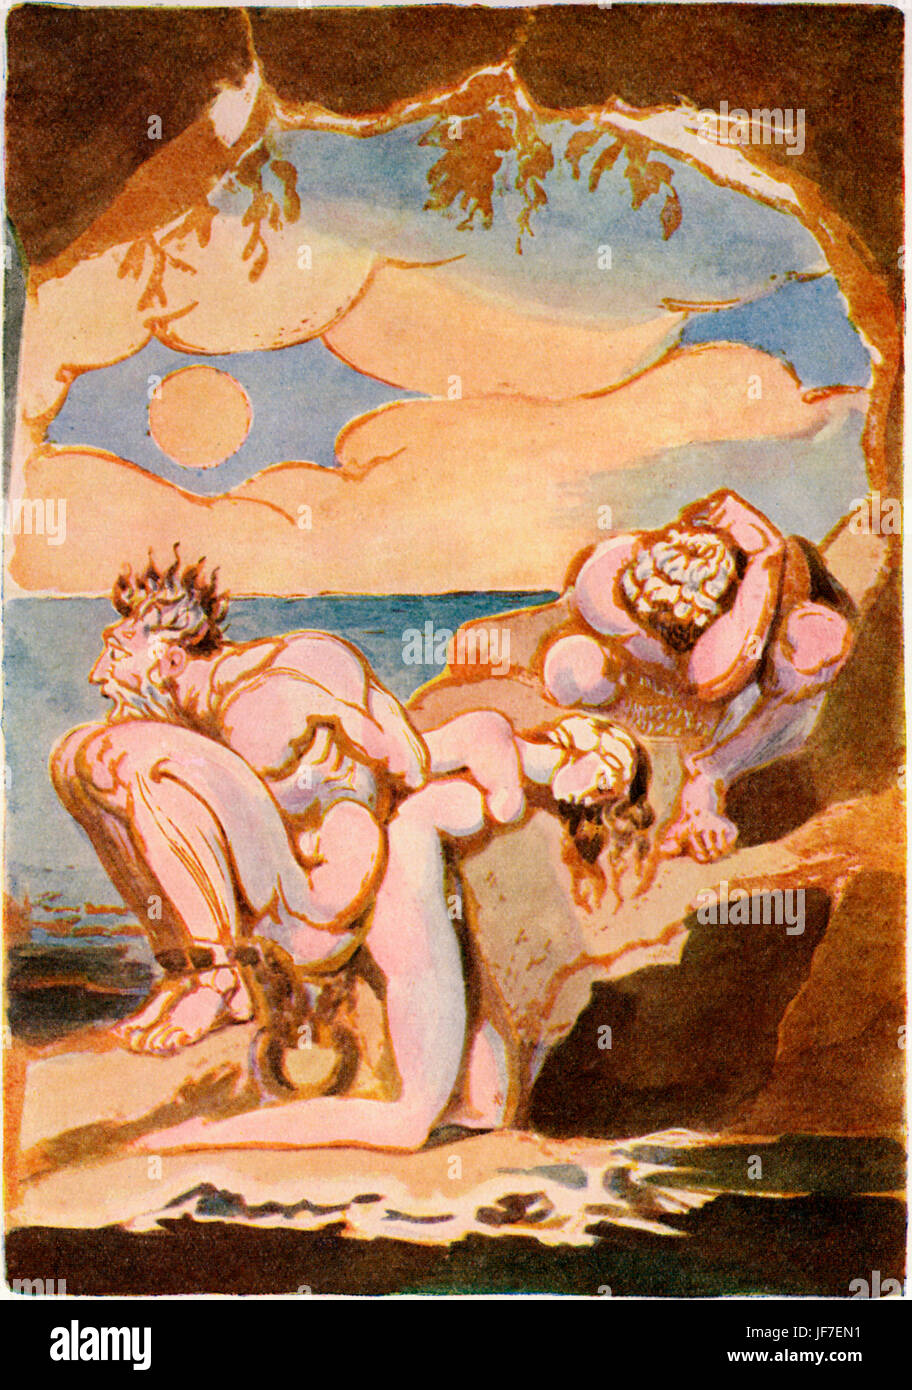 William Blake 's illustration for his poem Visions of the Daughters of Albion (1793). Last Page. Bromion, Oothoon - Stock Image